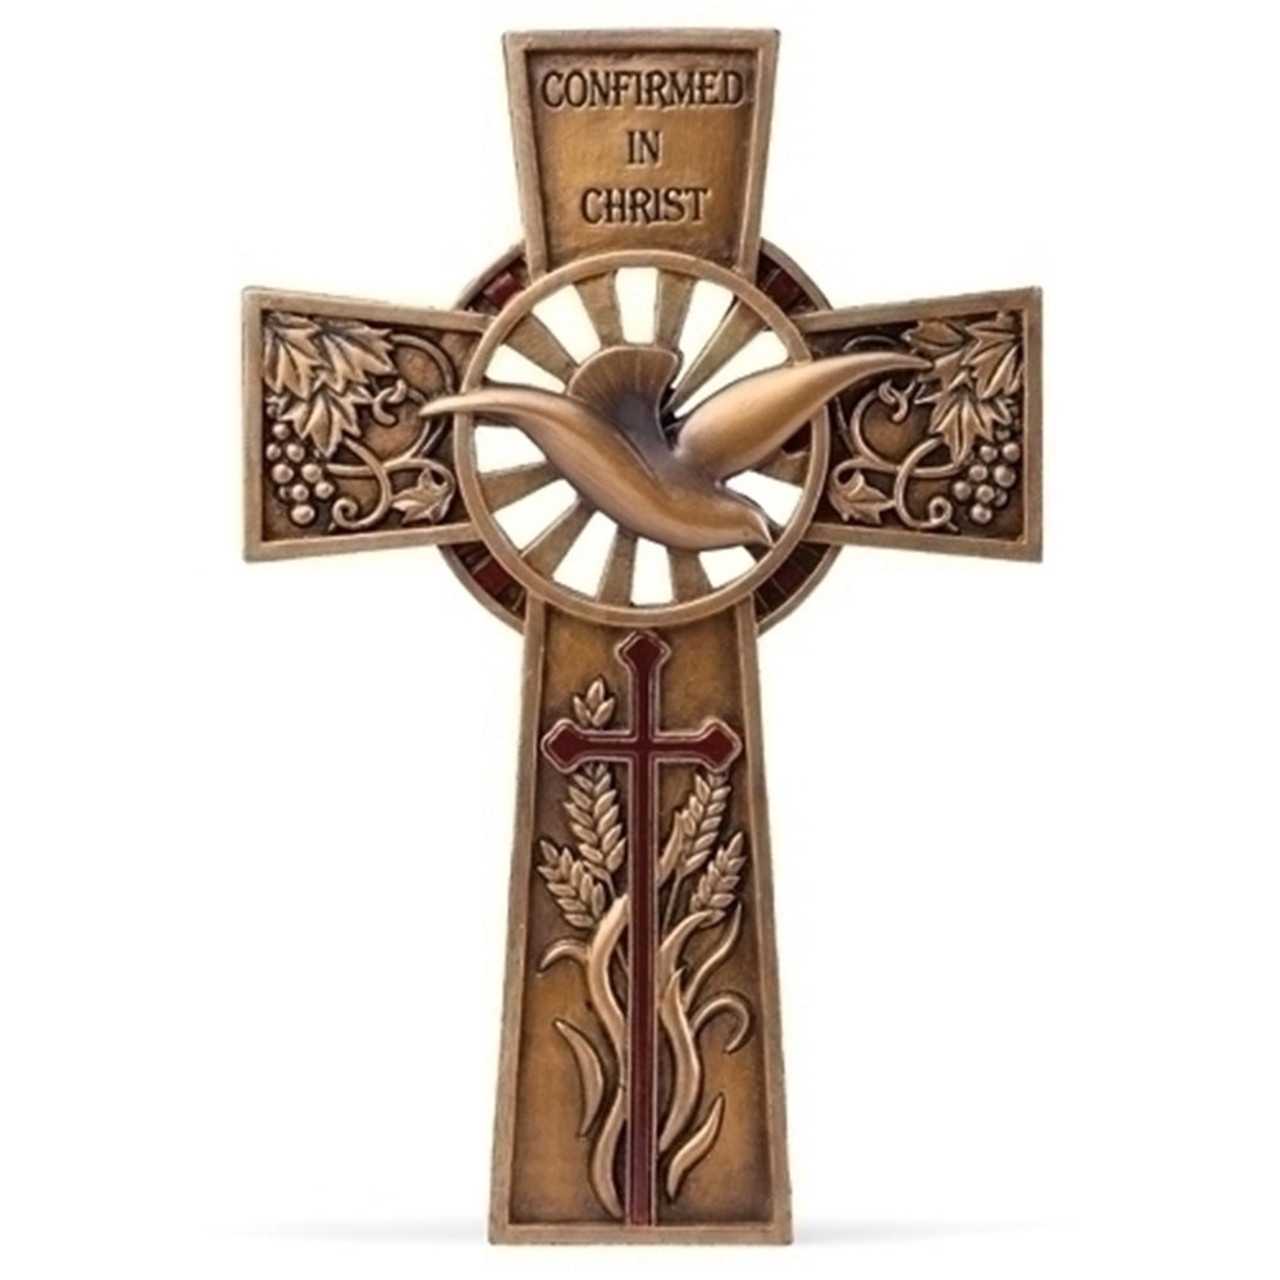 Confirmation Wall Cross 7.75IN Resin/Stone